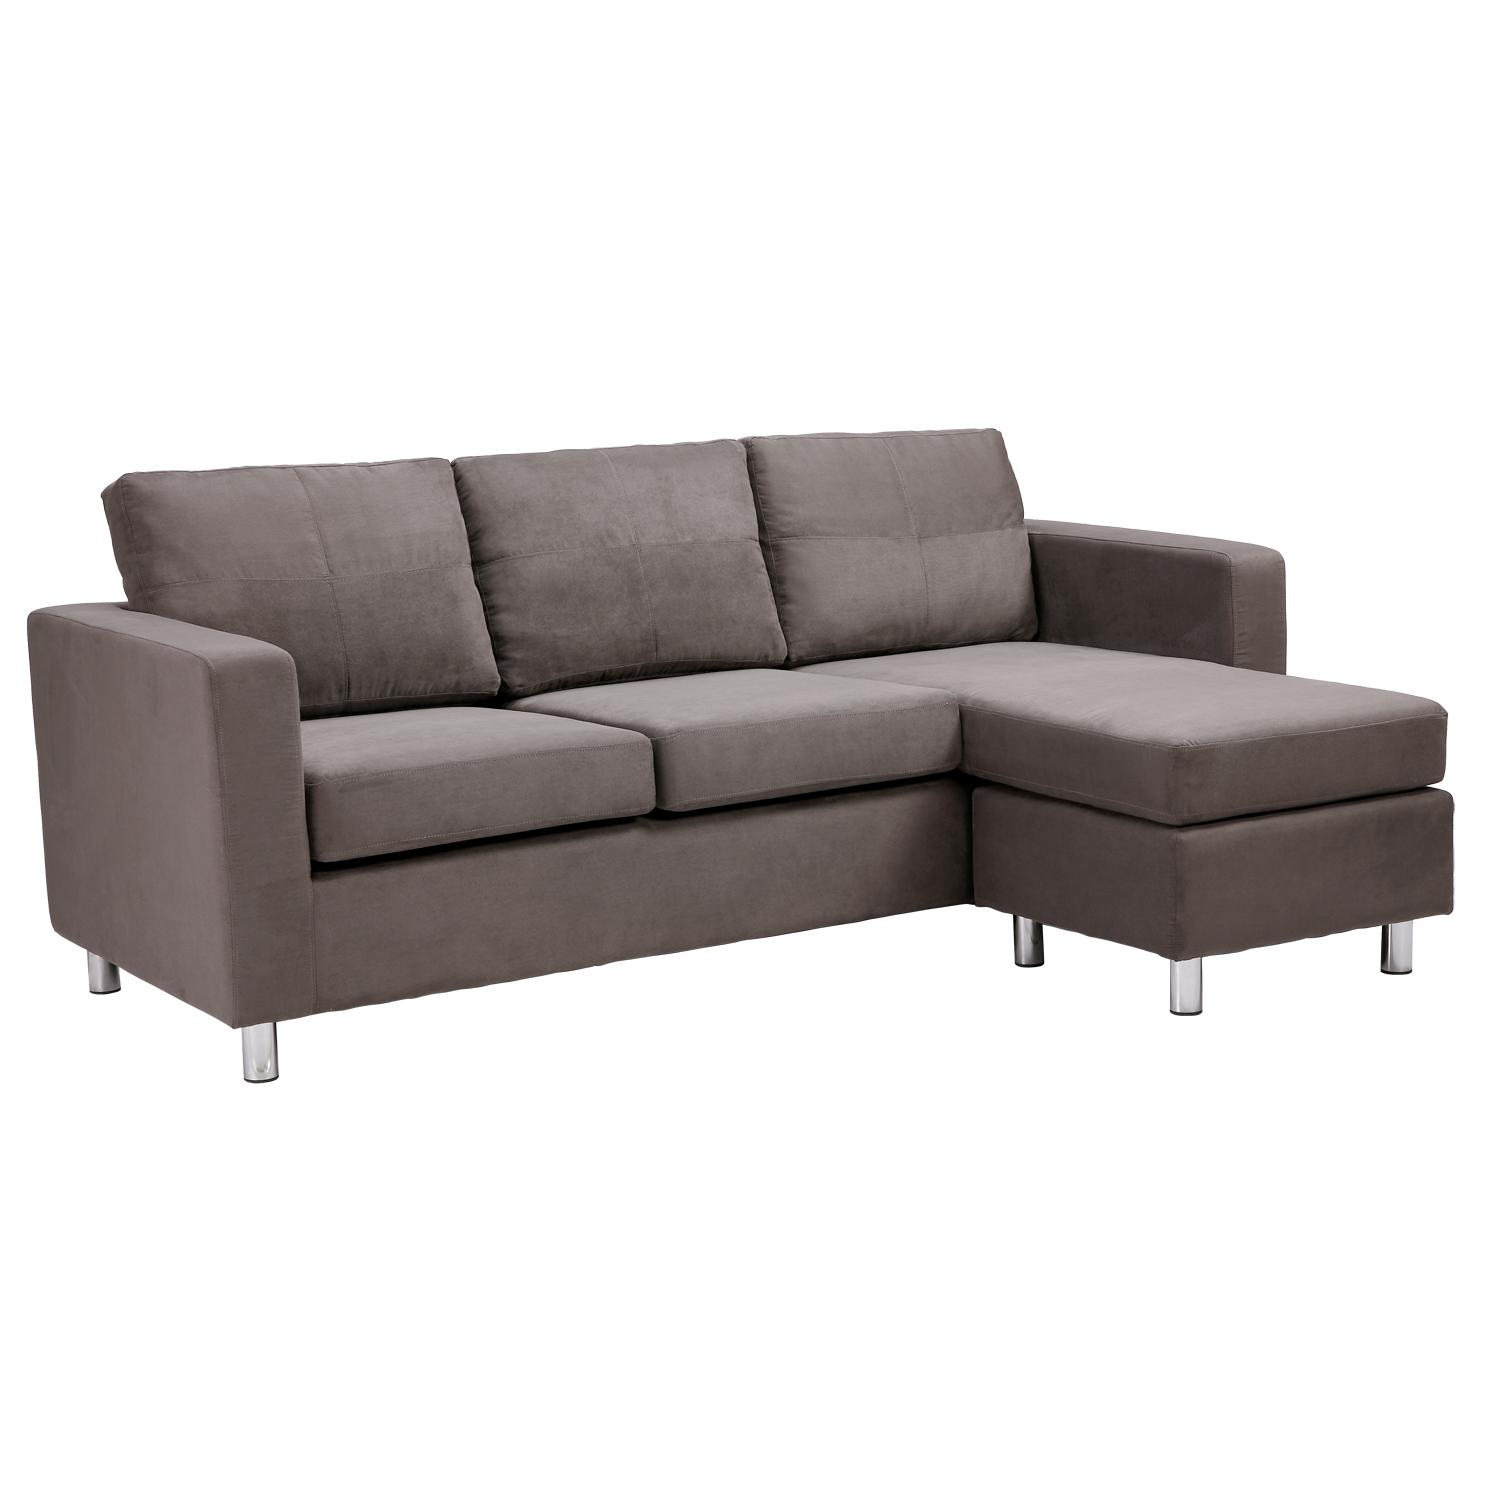 small grey sofa next polyester awesome modern minimalist design sectional in